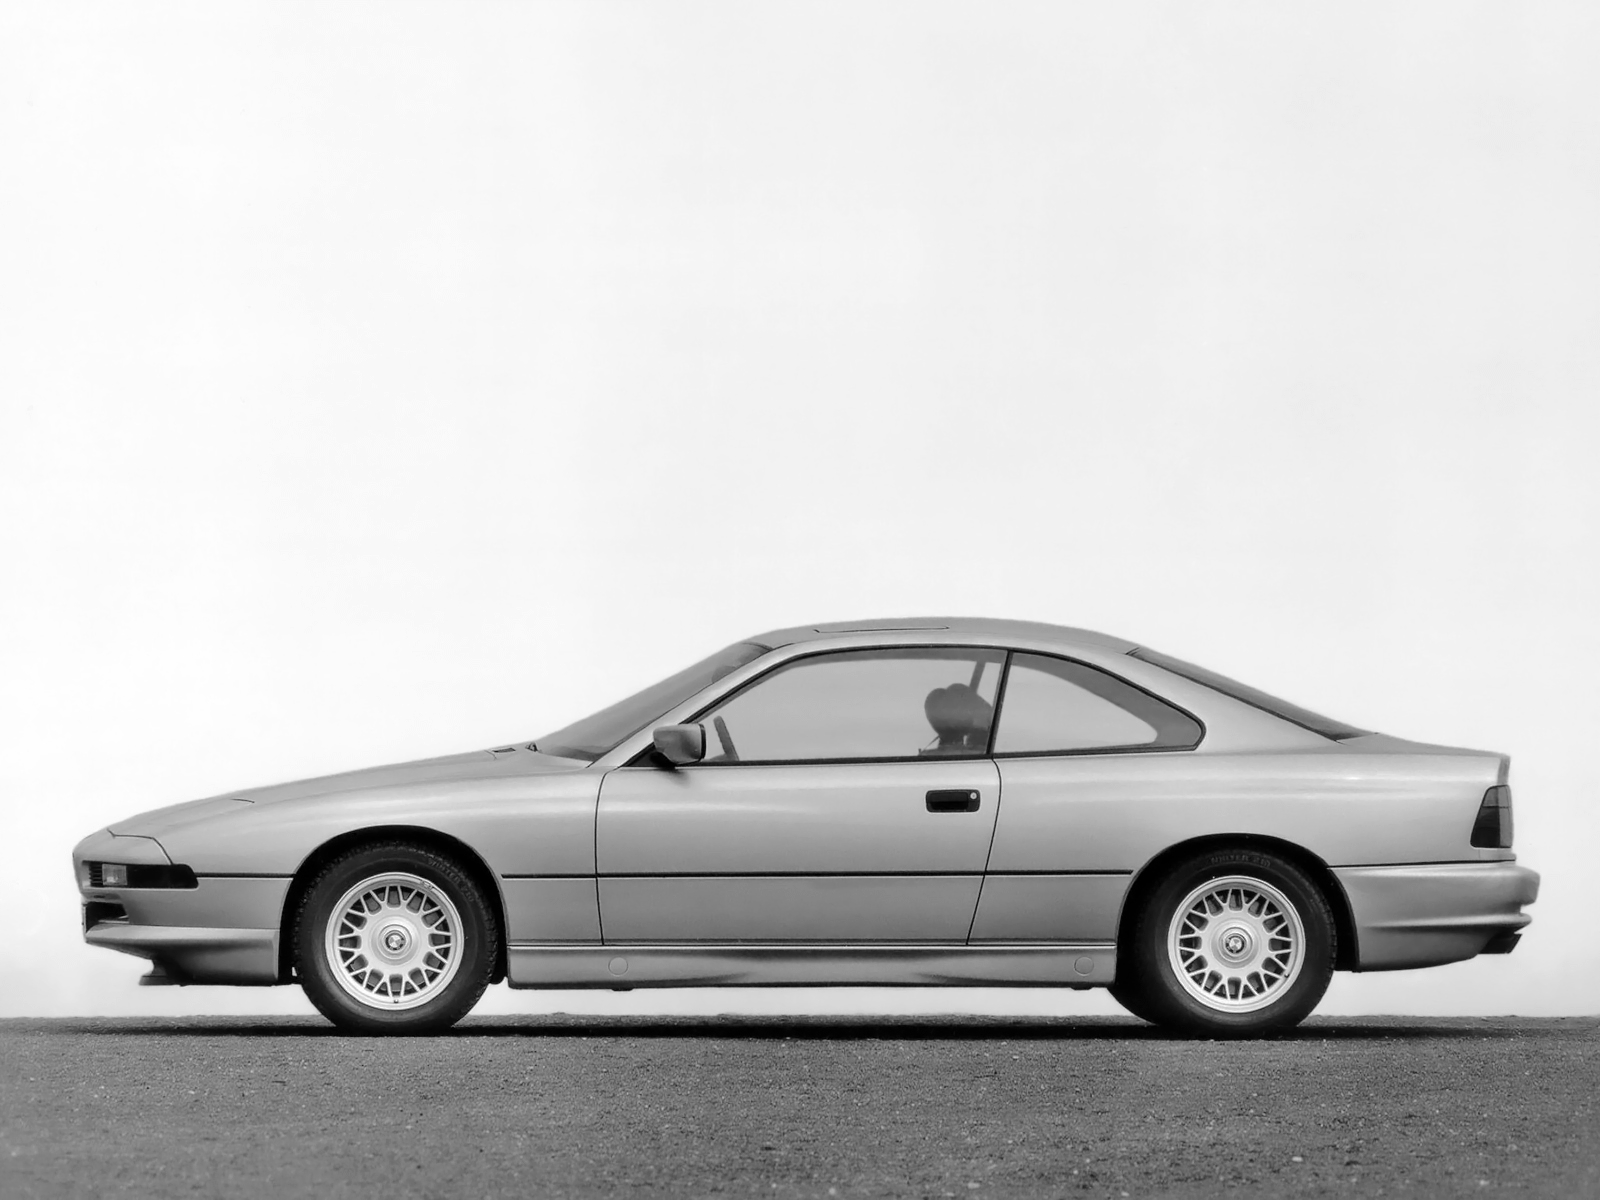 Bmw 850 Photos Photogallery With 5 Pics Carsbase Com